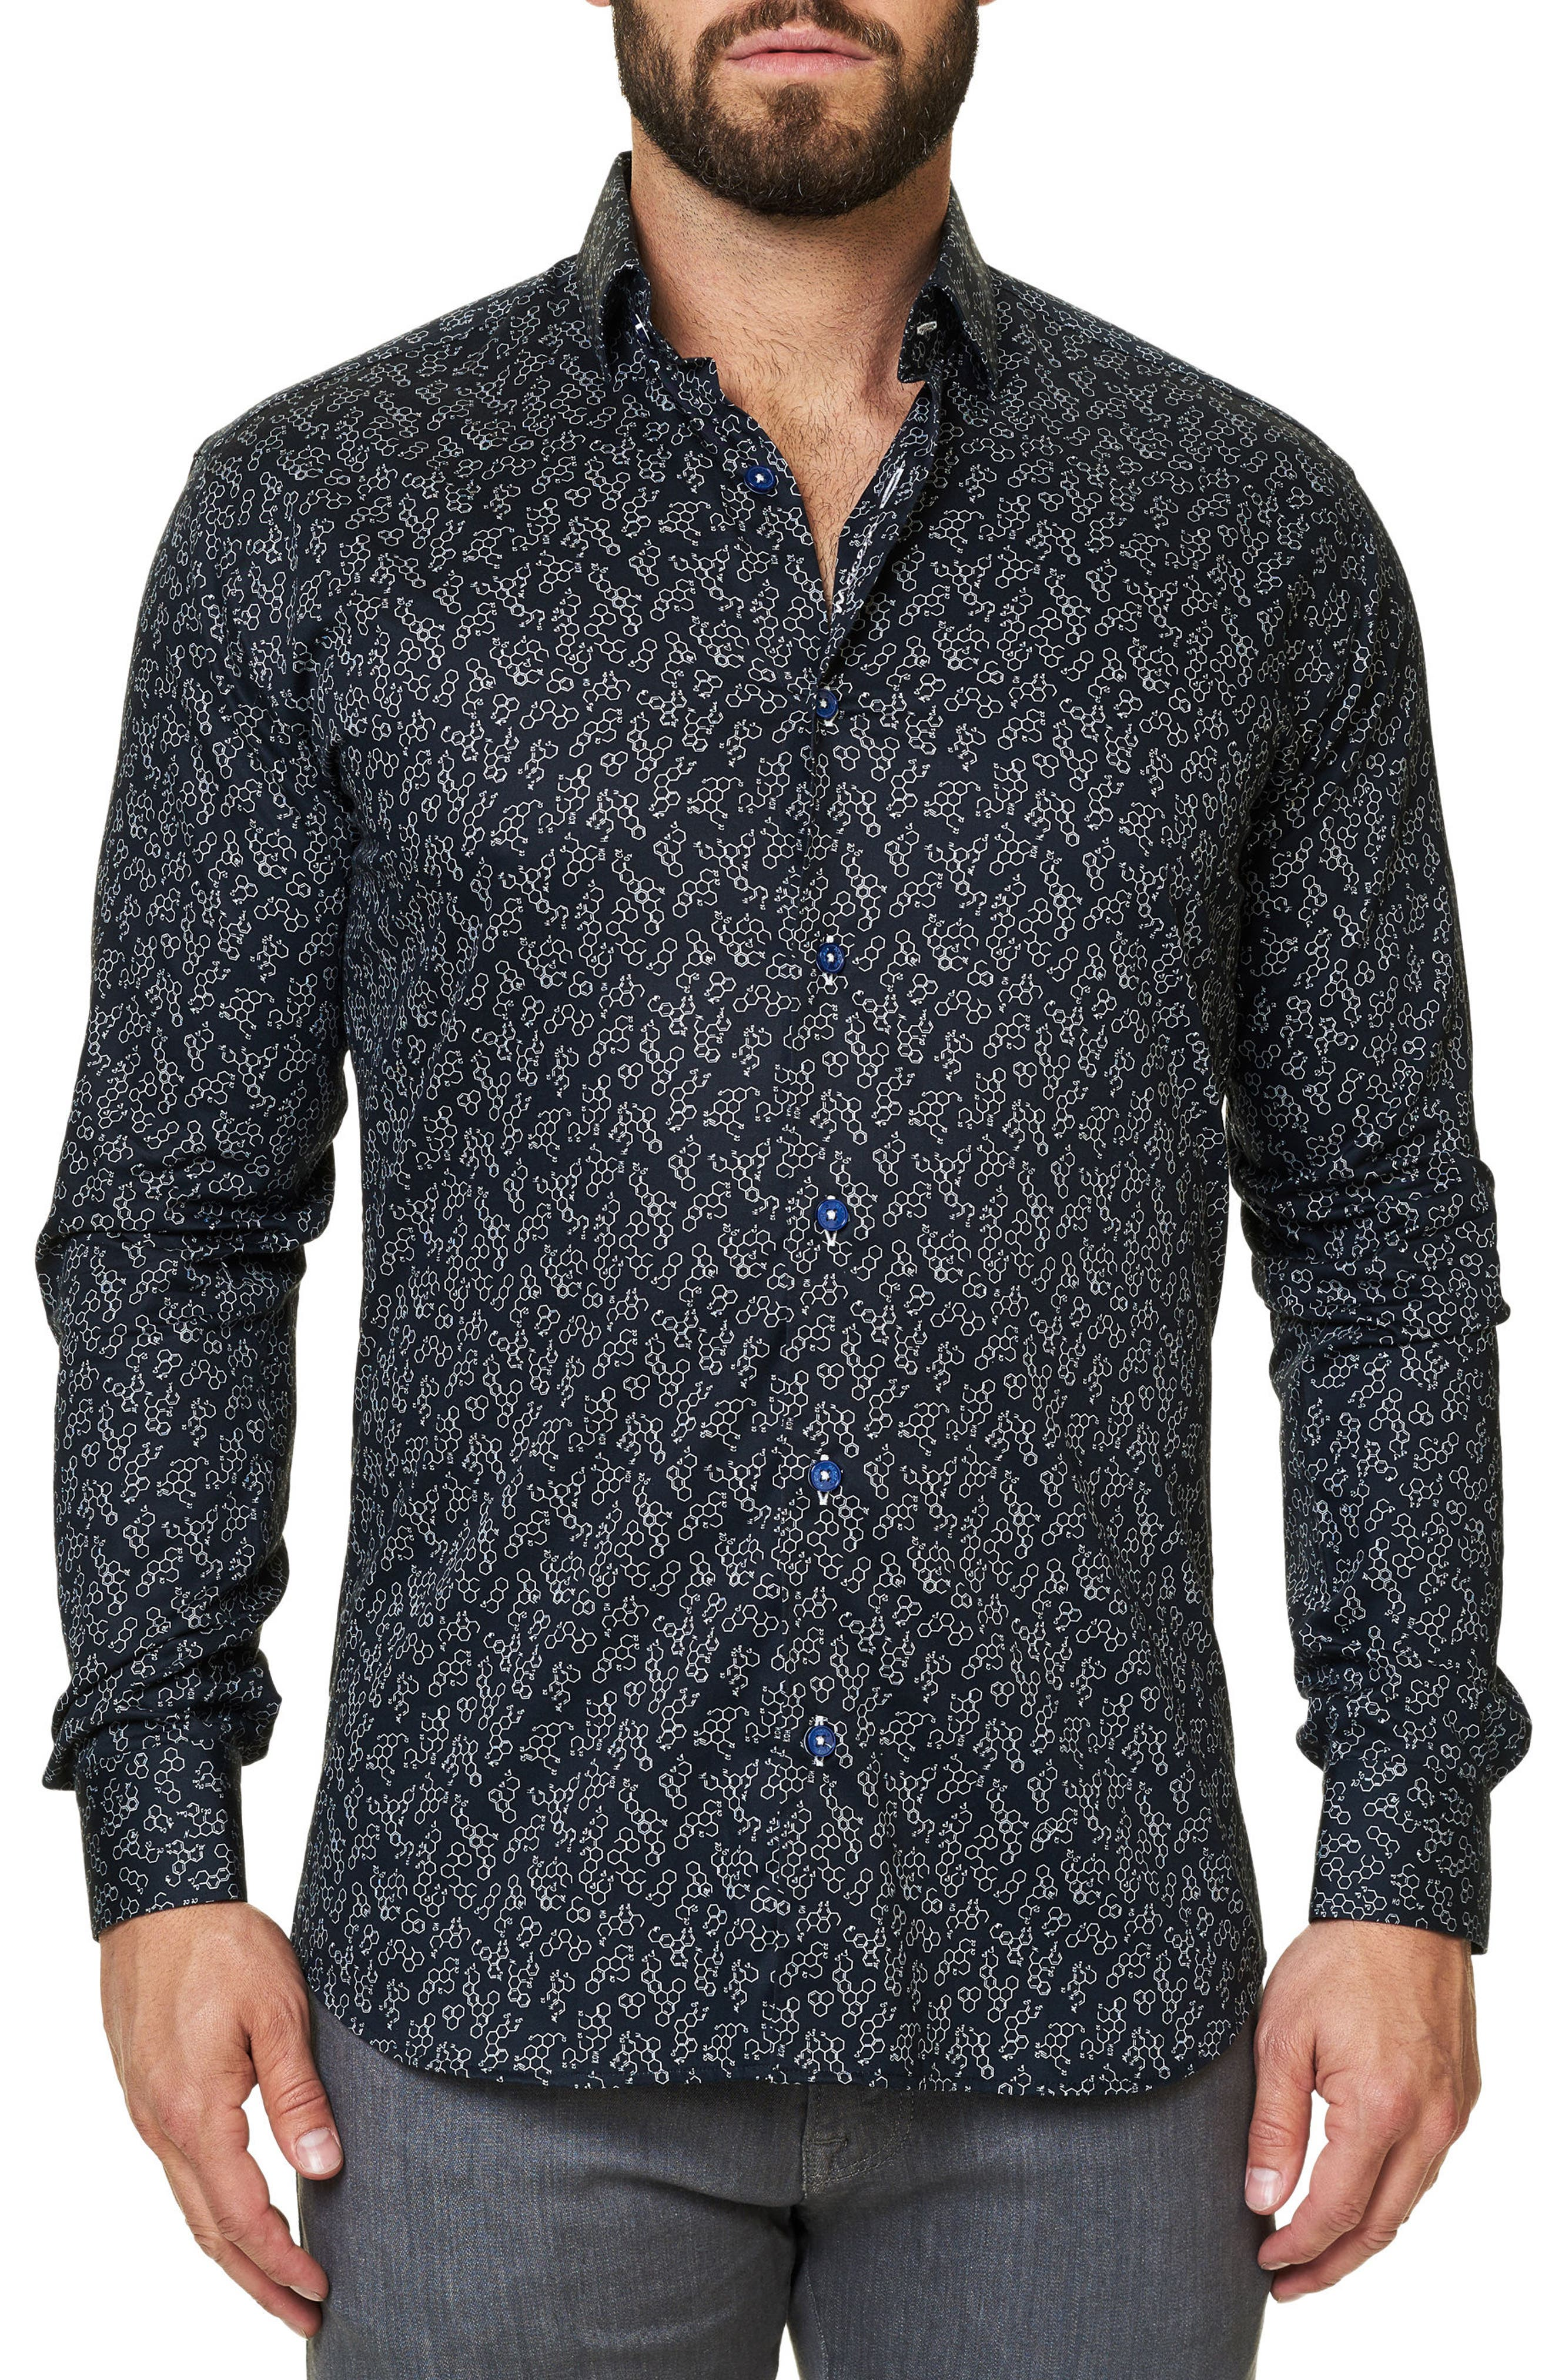 Alternate Image 1 Selected - Maceoo Luxor Funky Chemistry Trim Fit Sport Shirt